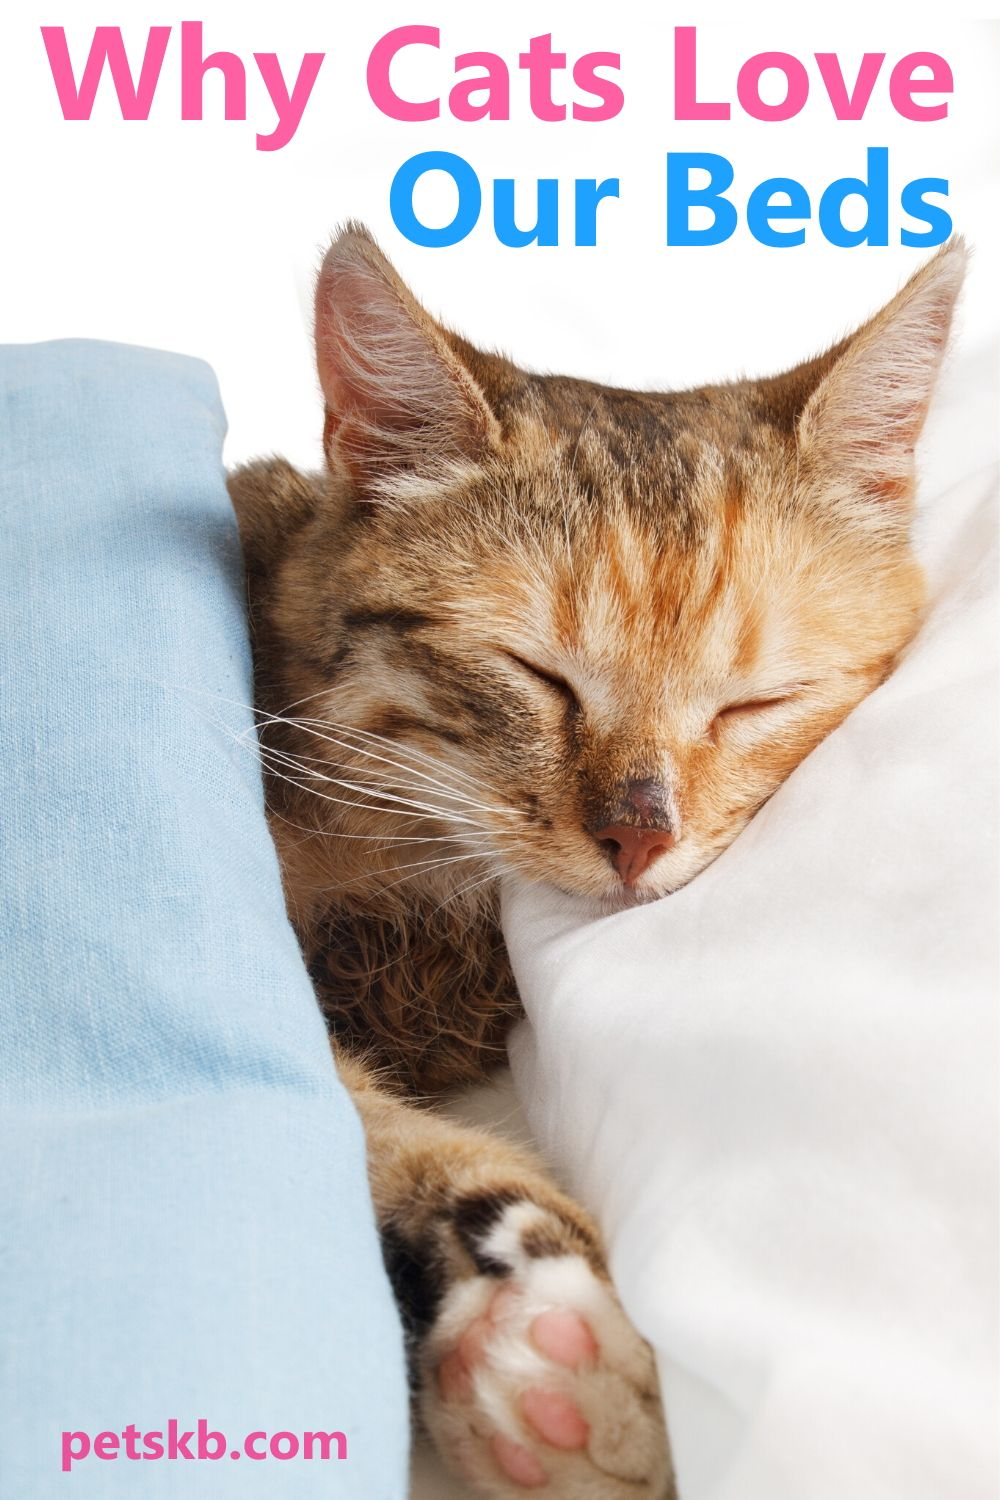 Why Do Cats Love Our Beds In 2020 Cat Parenting Cats Cat Behavior